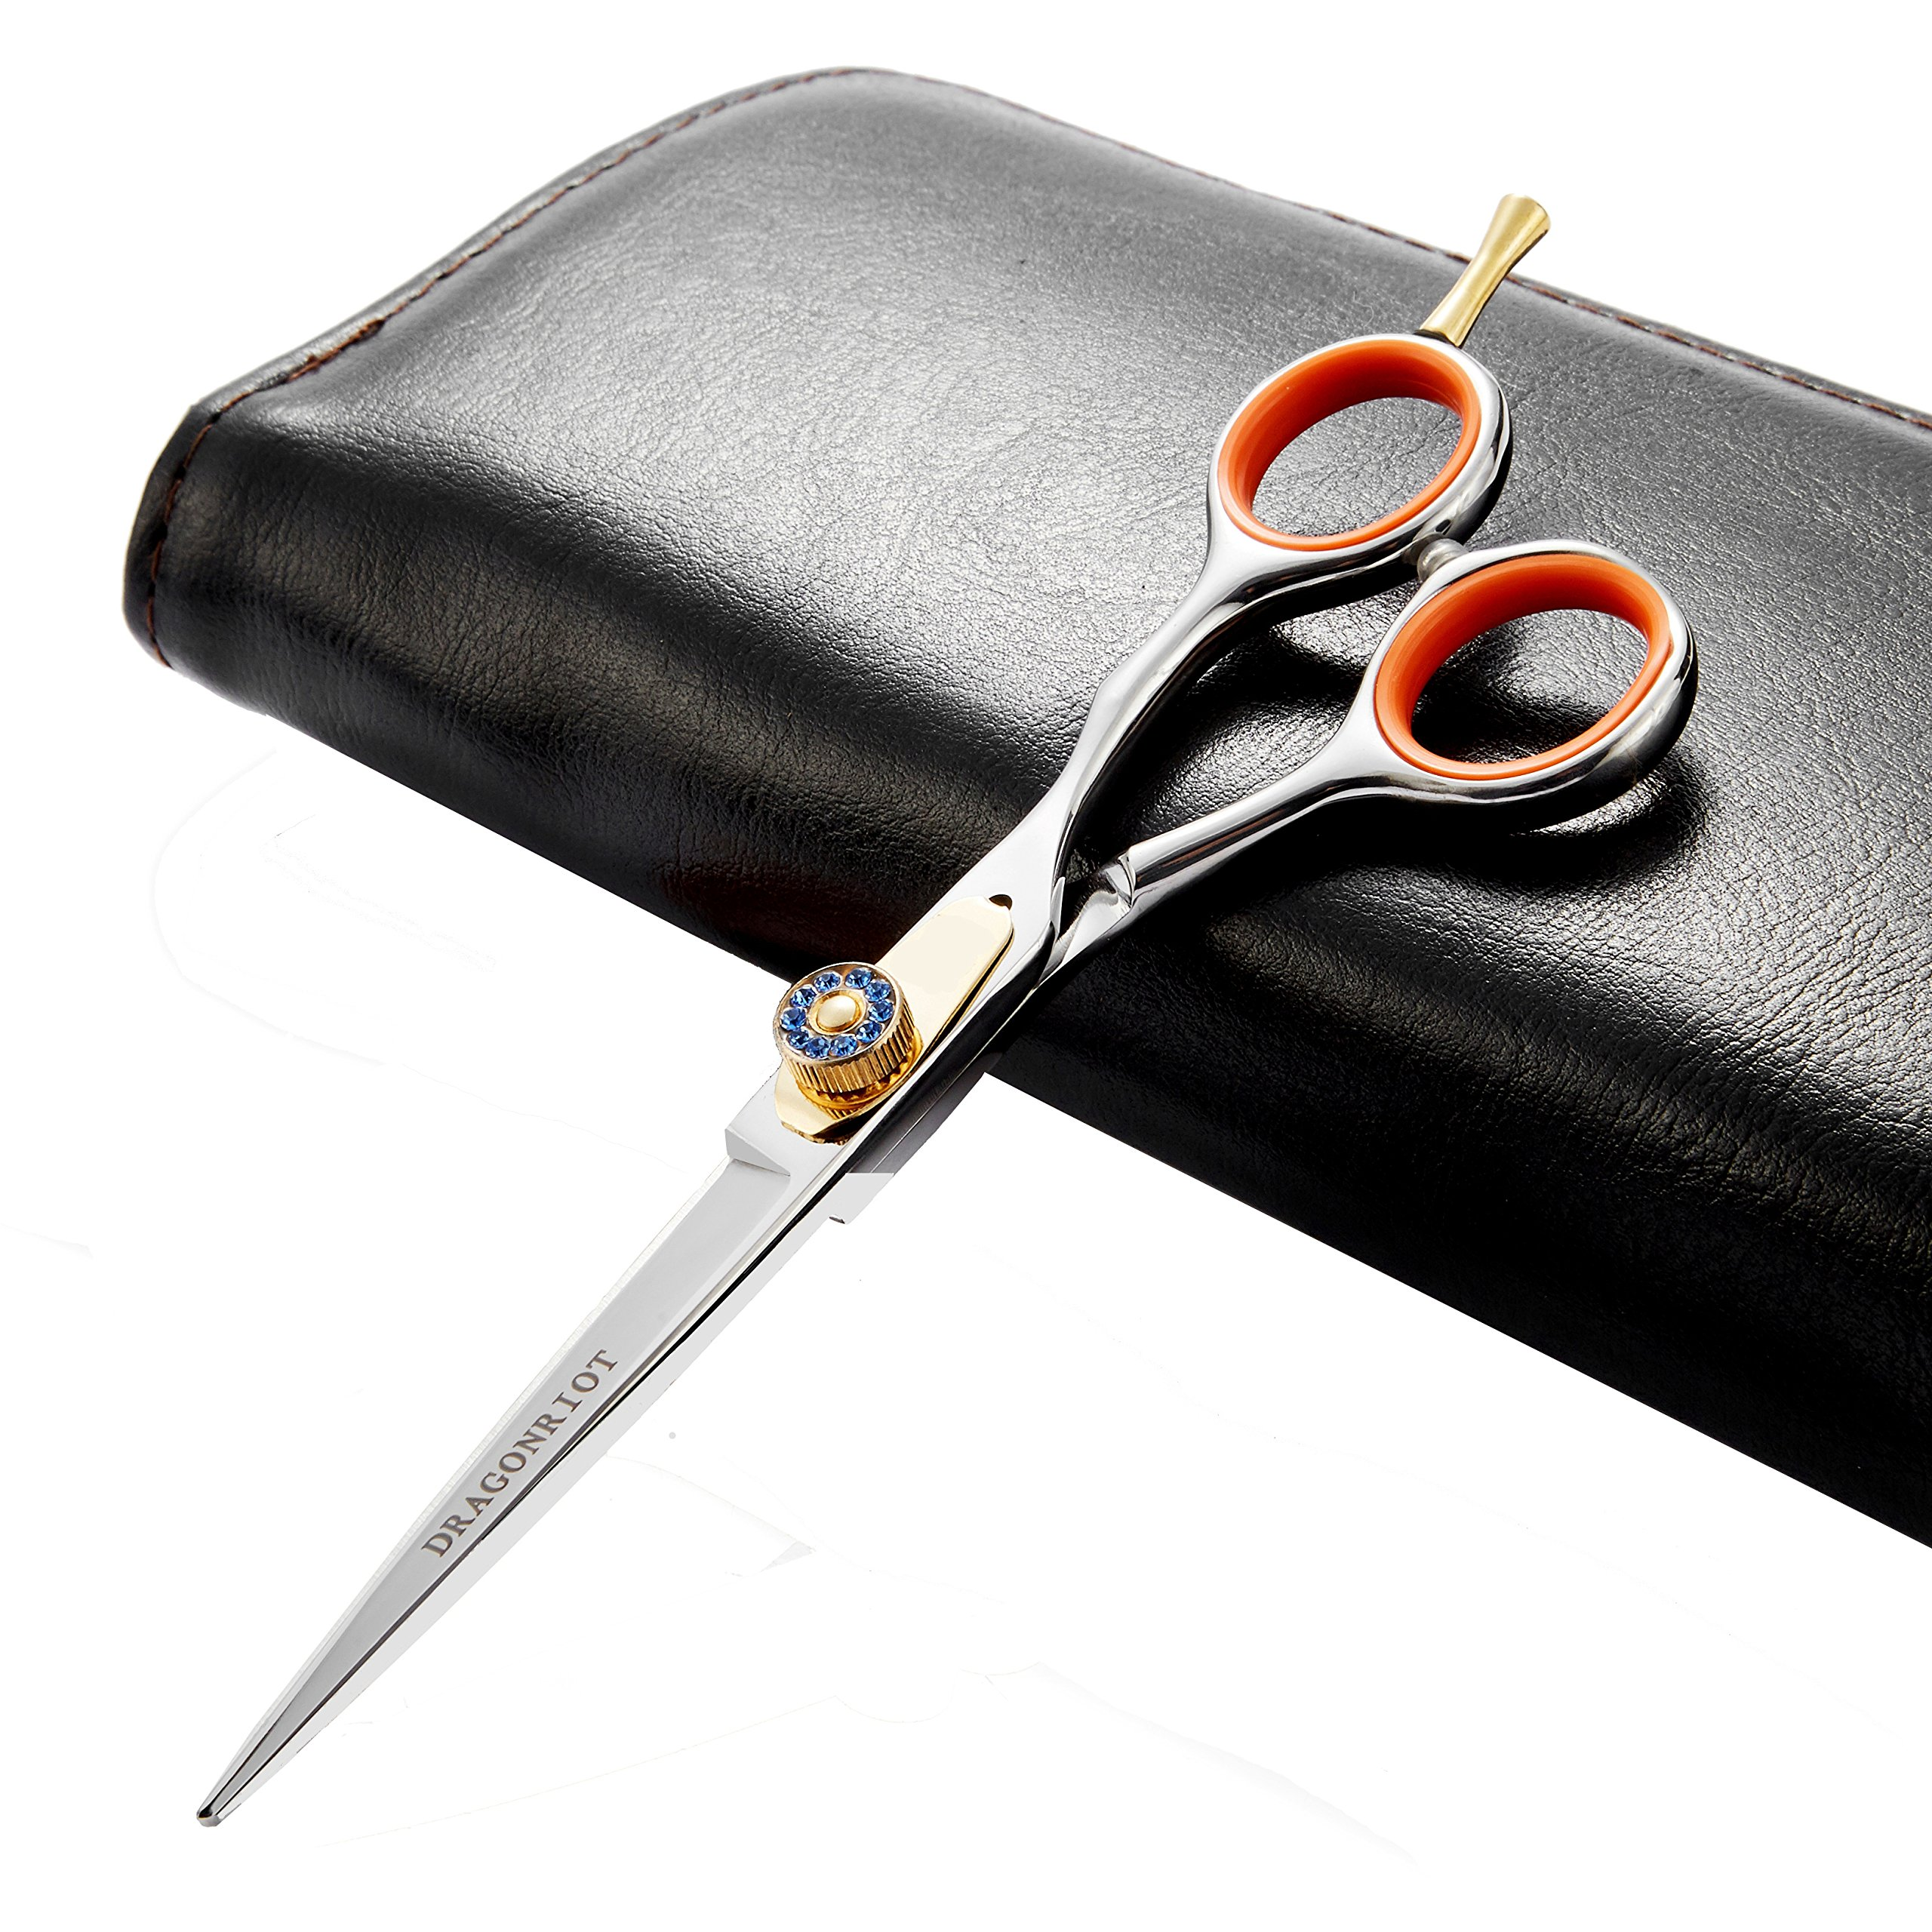 Japanese Professional Hair Cutting Shears,Barber Razor Edge Hair Cutting Scissors Hairdressers Scissor Hair For Women/Men Stainless Steel 6.5 Inch Adjustment Tension Screw,Finger Rest With Case